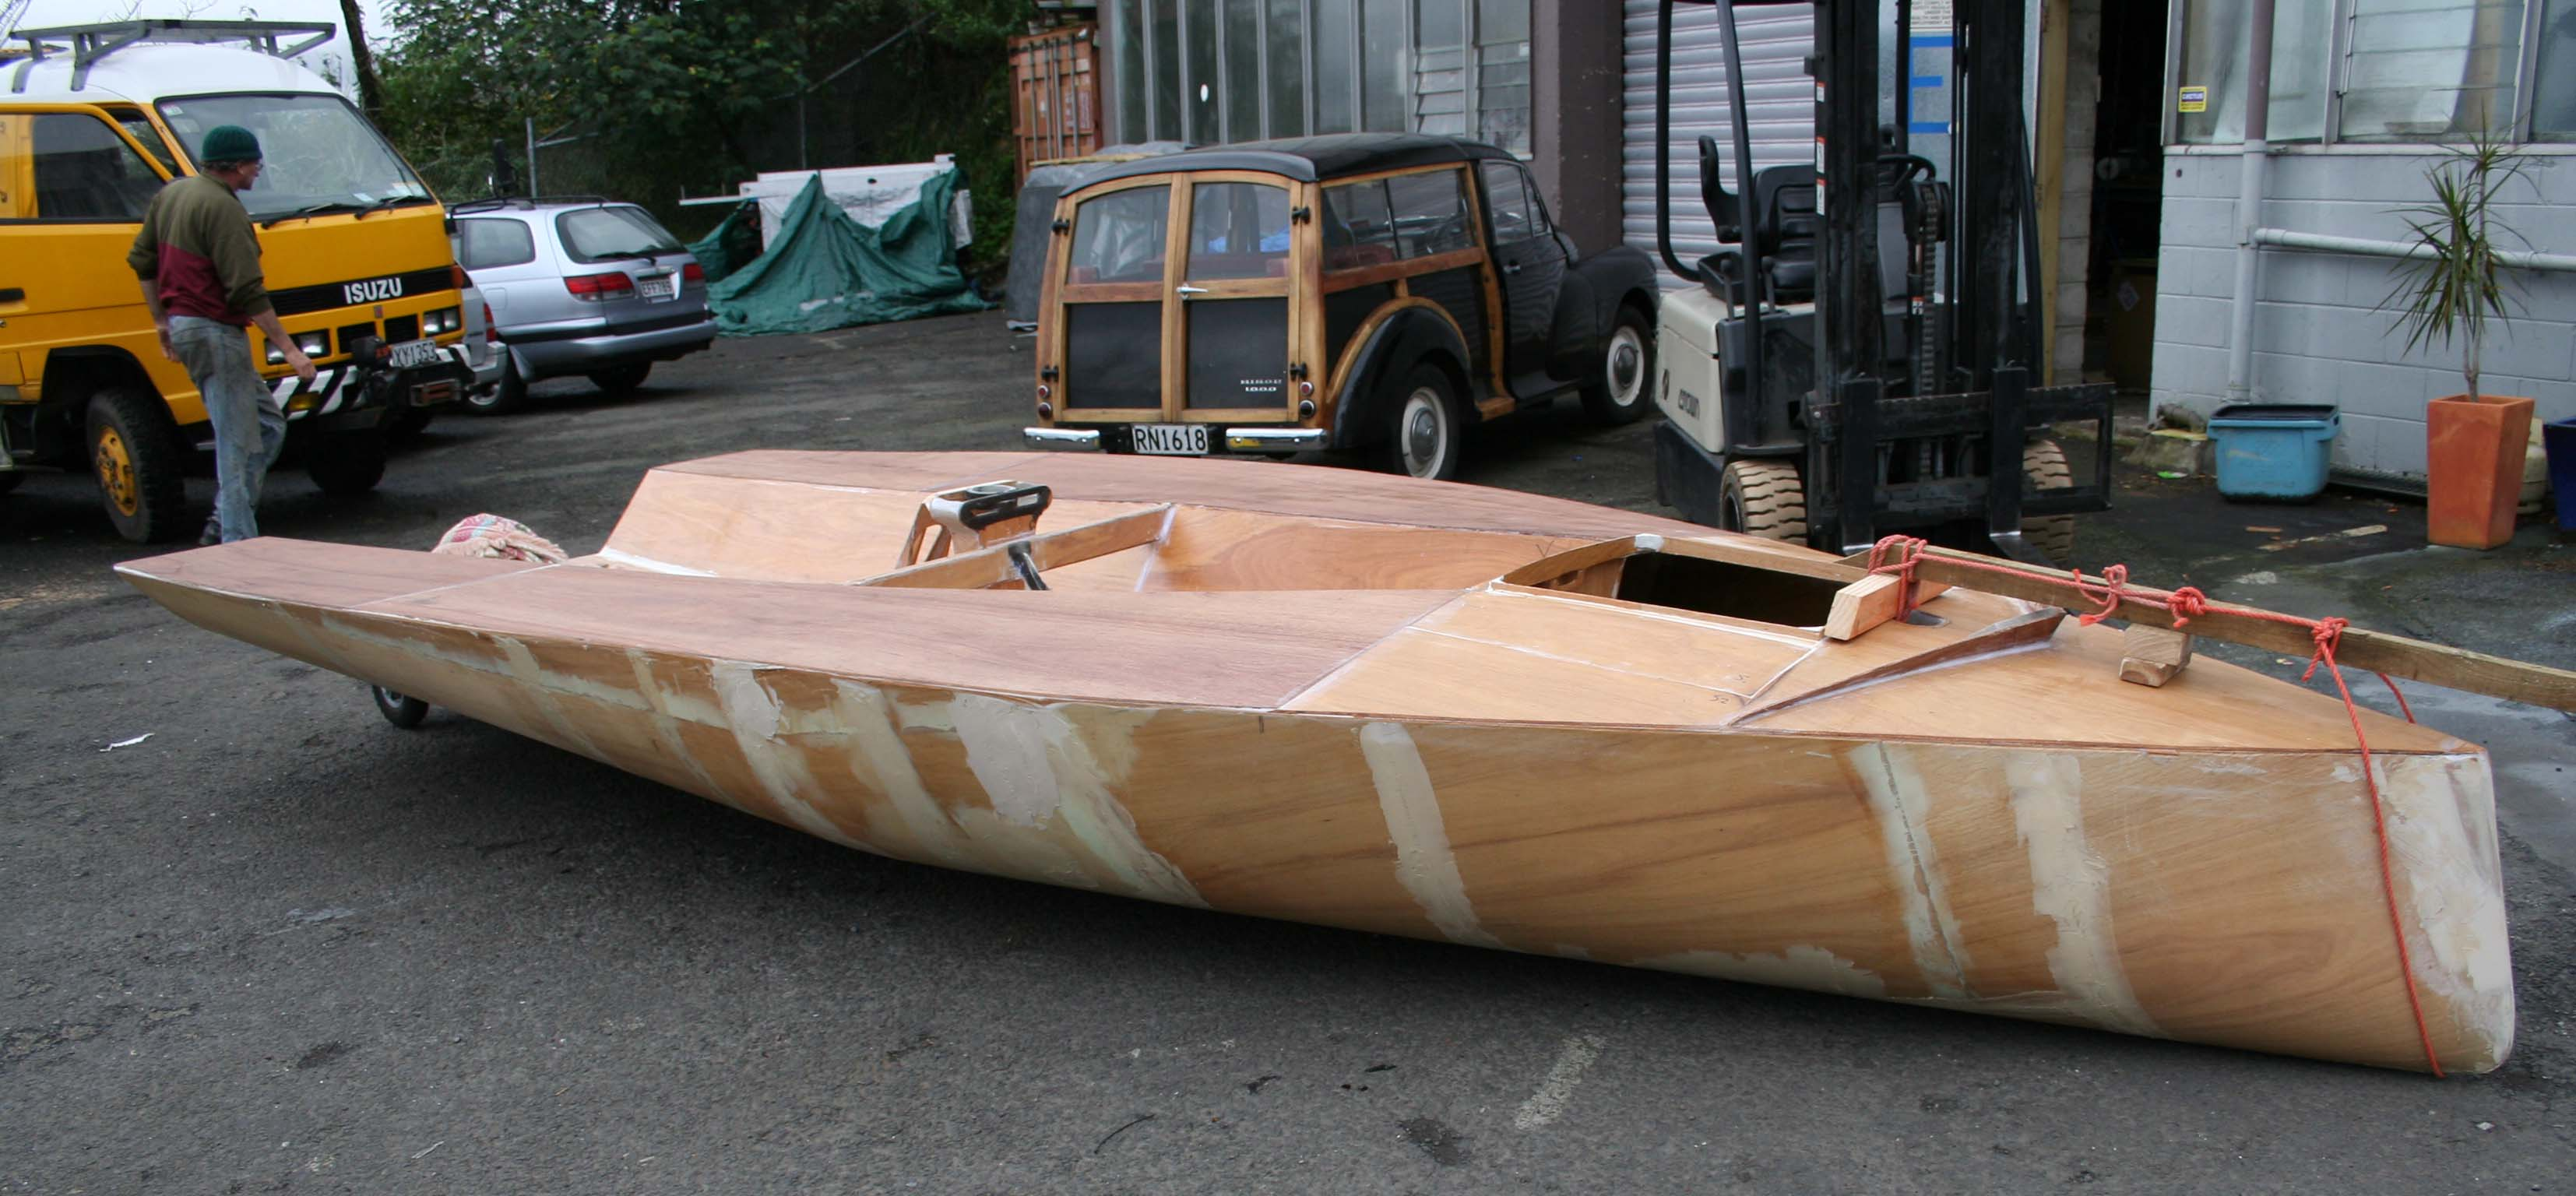 Home built jet dinghy s from new zealand boat design forums - Img_1174 Jpg